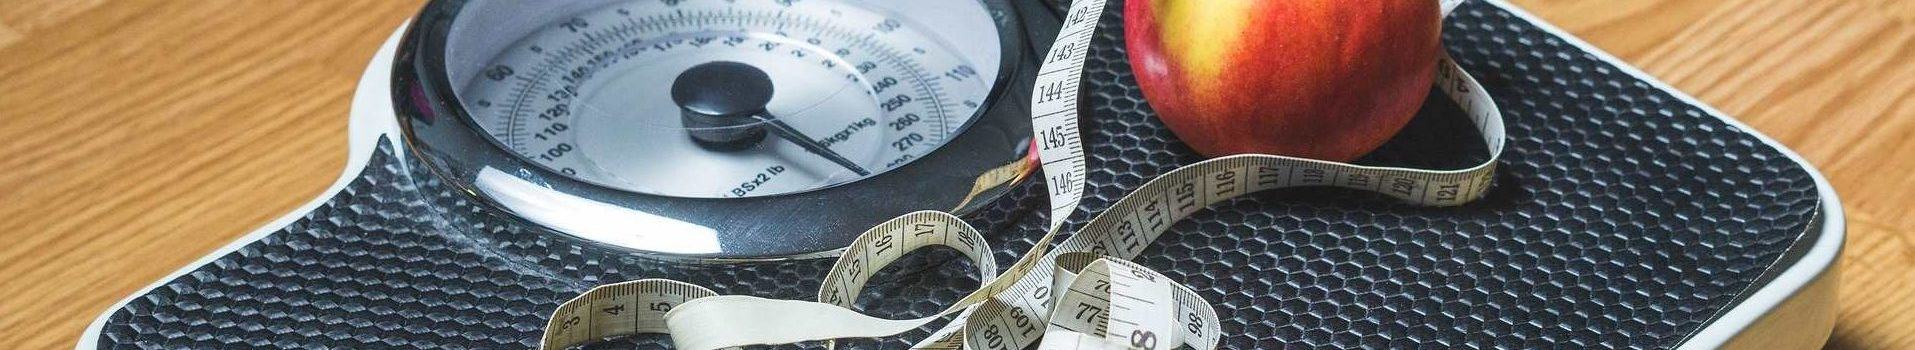 Understanding the Relationship between Diet, Exercise and Weight Loss